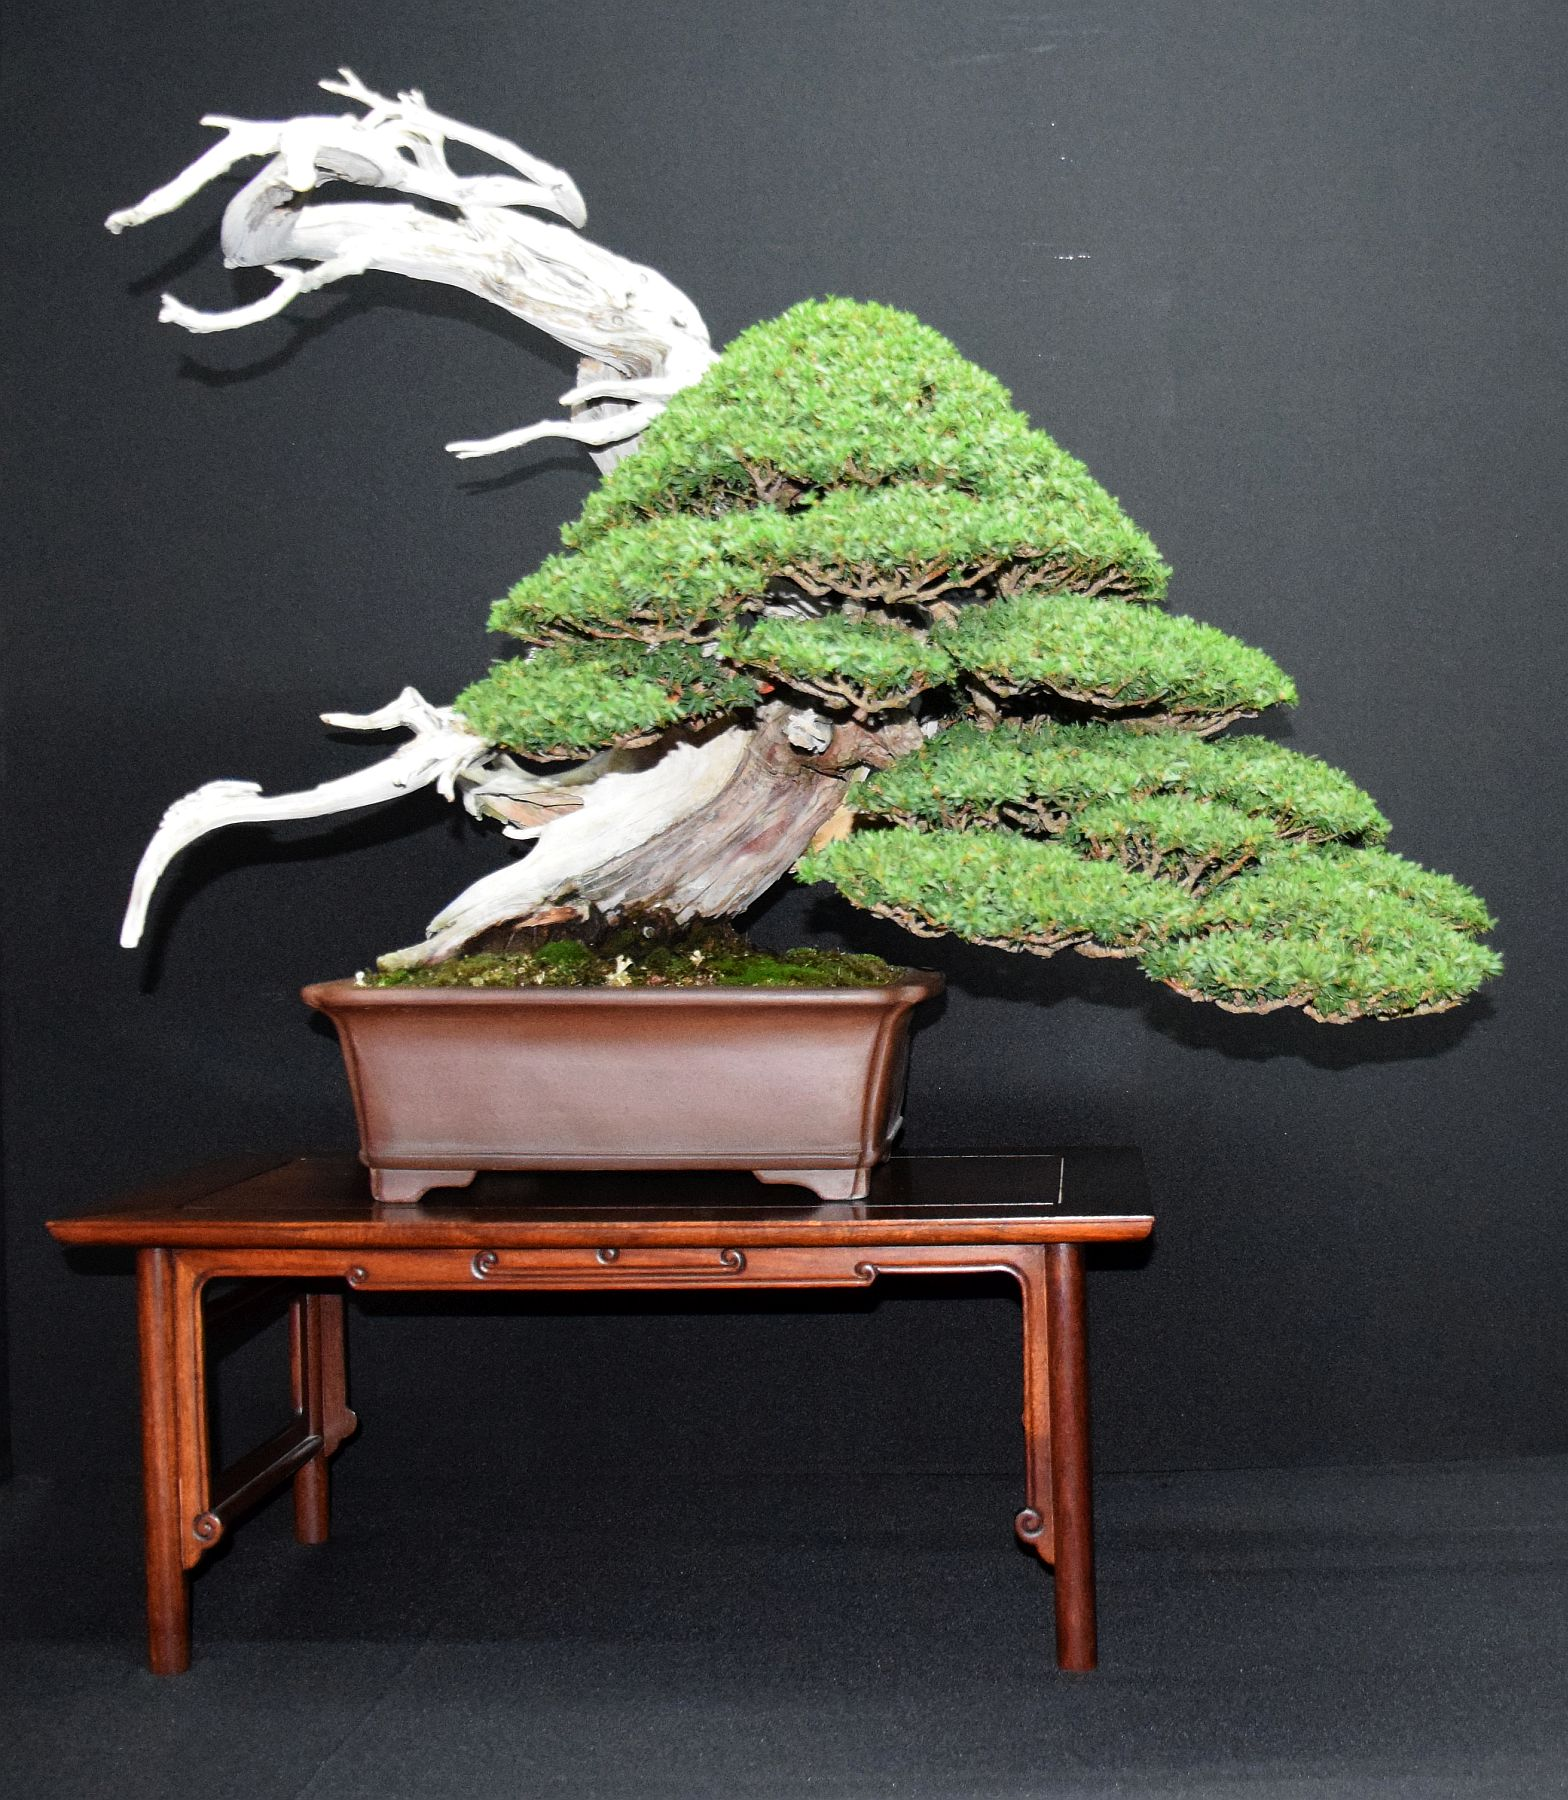 bonsai-museum-luis-vallejo-027